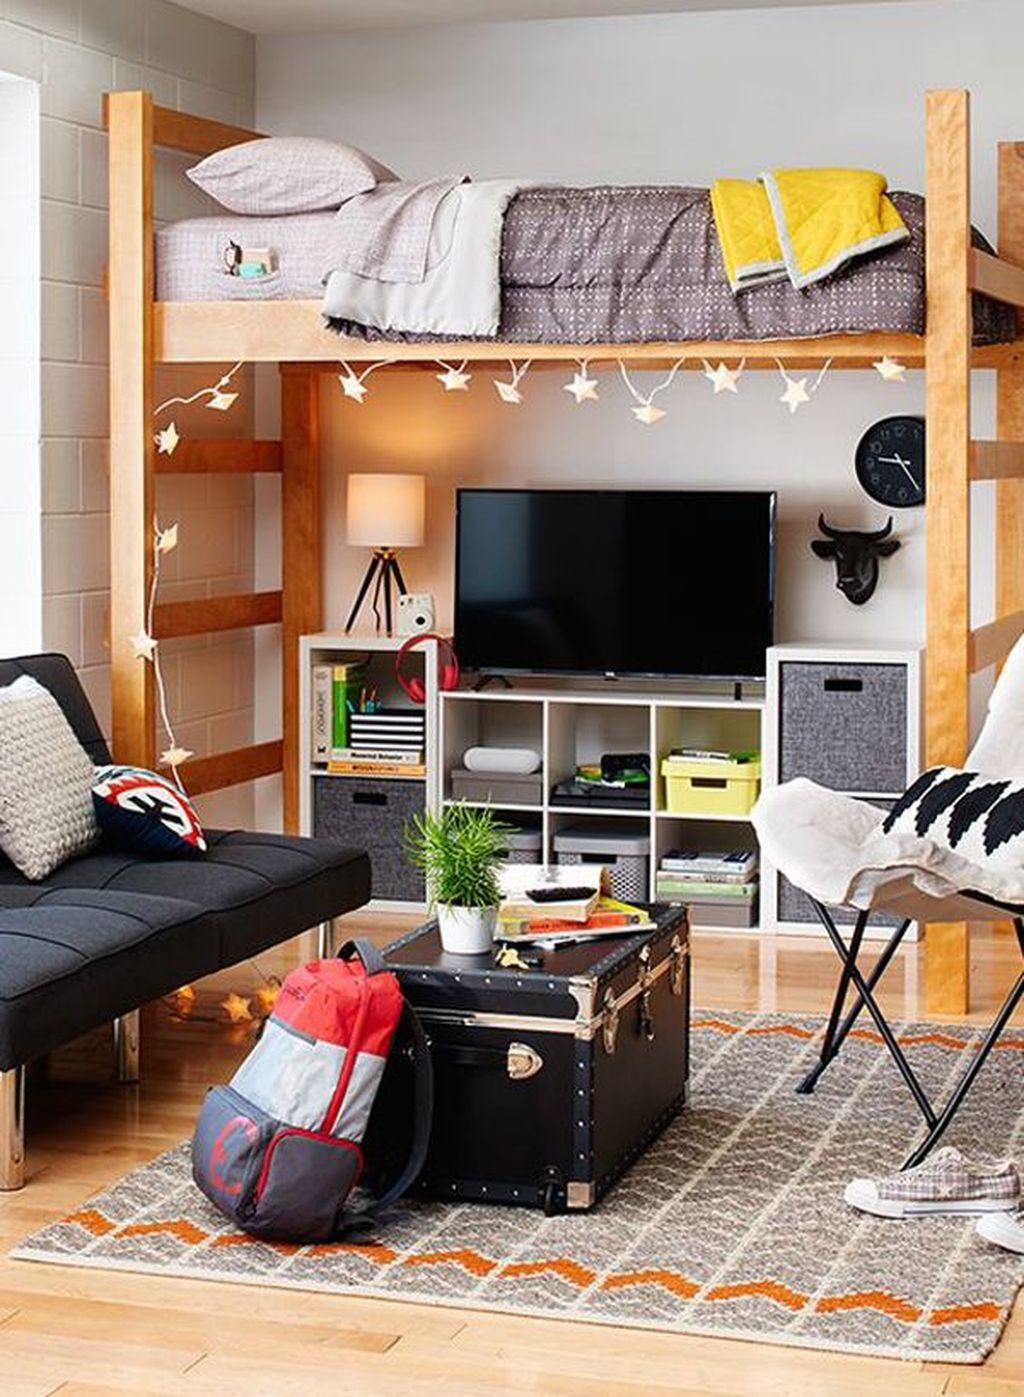 46 Charming Diy Dorm Room Decorating Ideas On A Budget